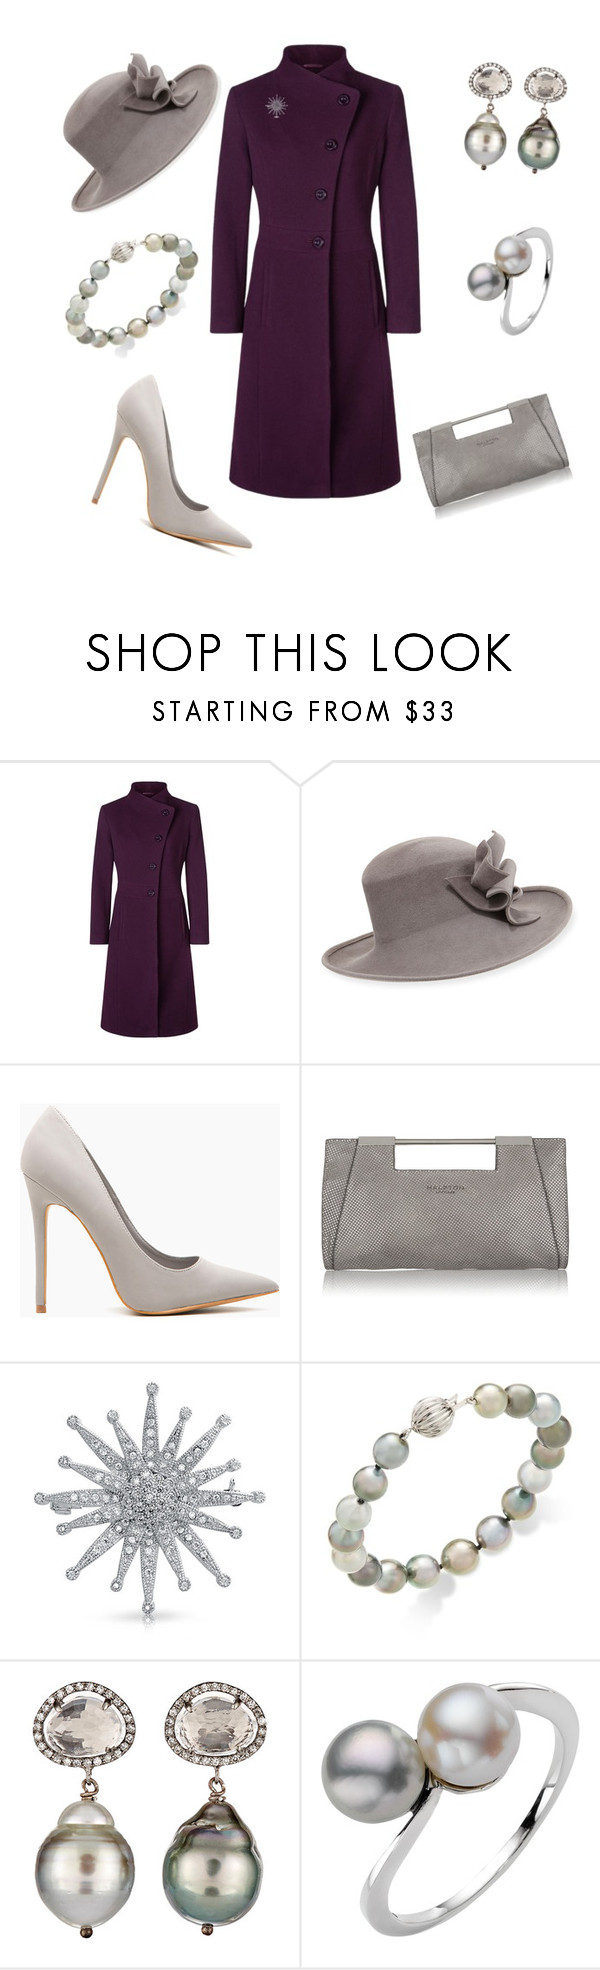 """""""Statement Coat"""" by nmccullough ❤ liked on Polyvore featuring Kaliko, Philip Treacy, Halston Heritage, Bling Jewelry, Samira 13 and A B Davis"""